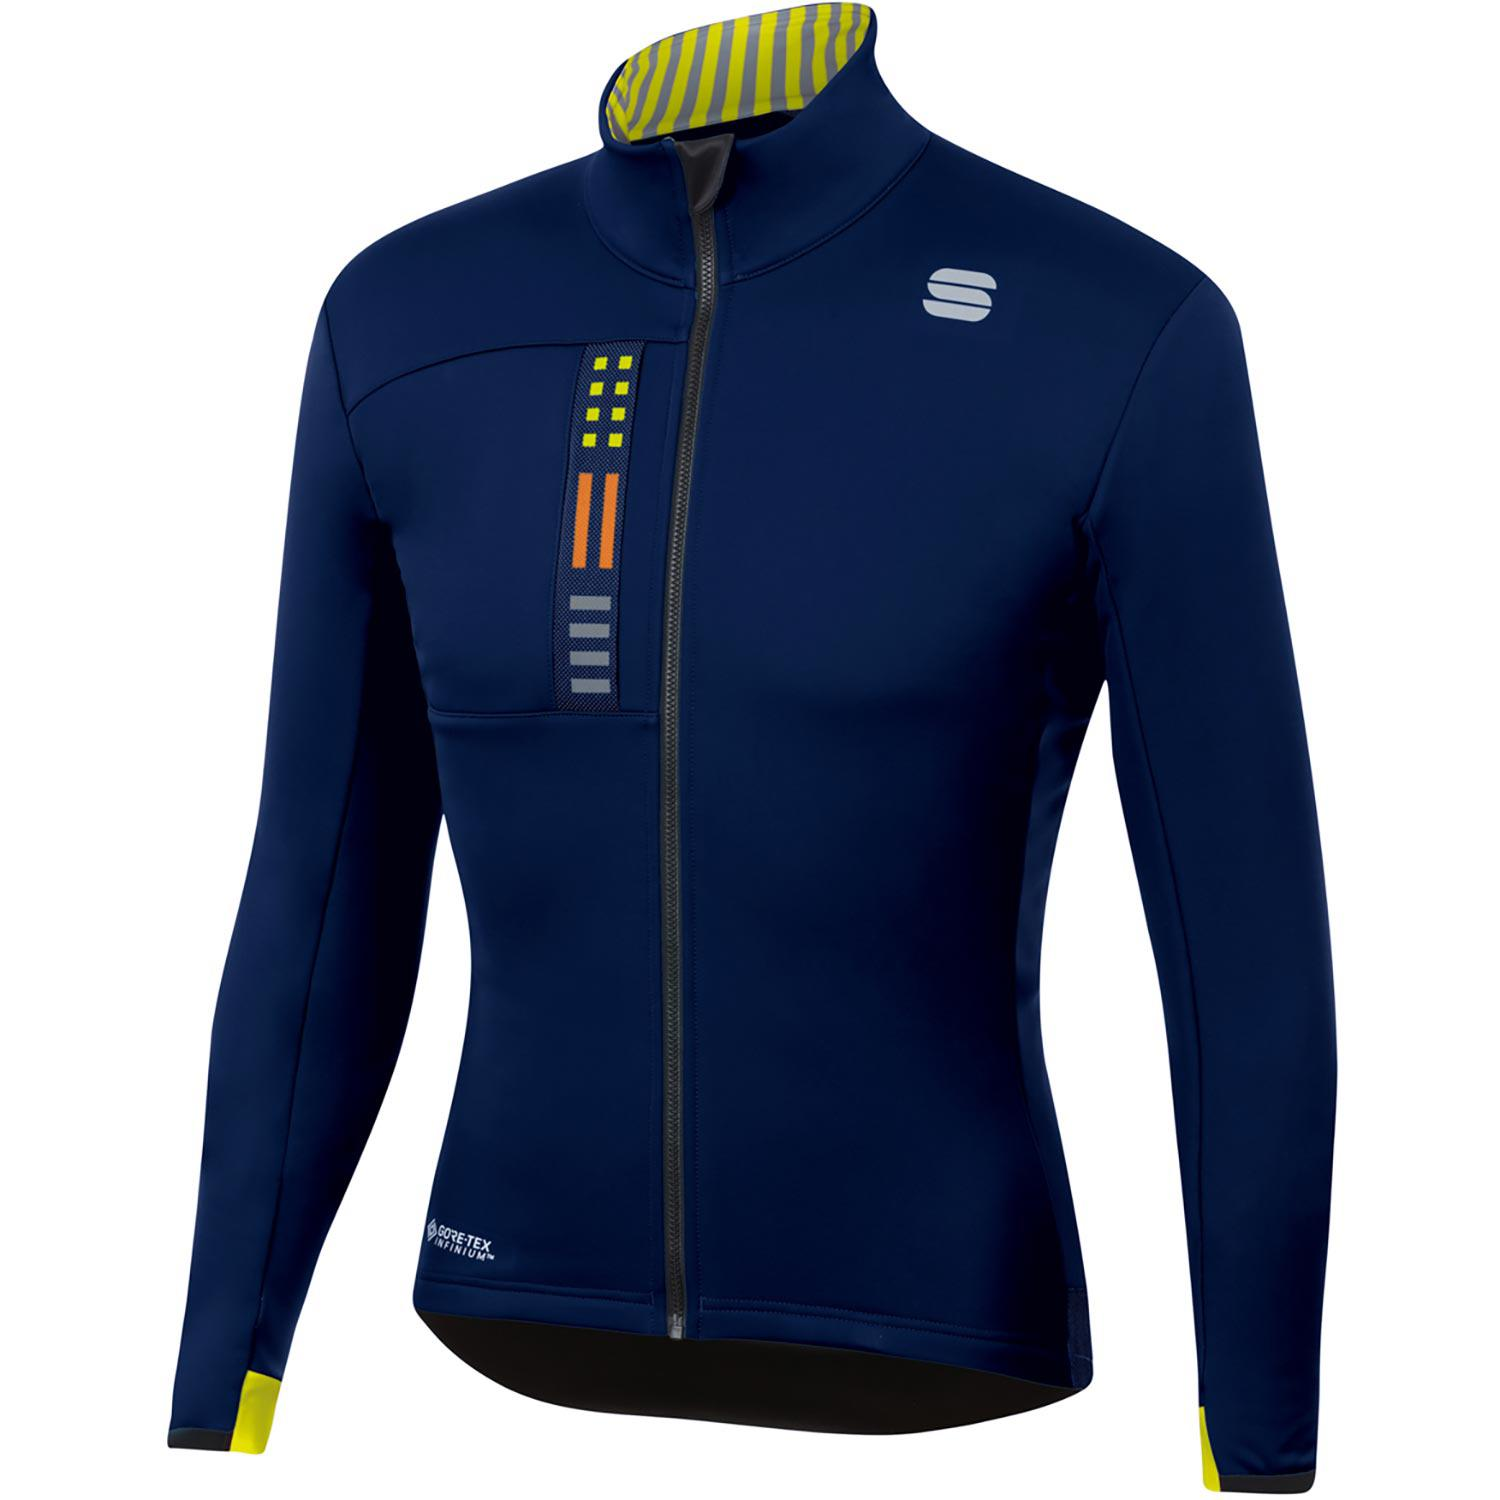 Sportful-Sportful Super Jacket-Blue-S-SF205110132-saddleback-elite-performance-cycling